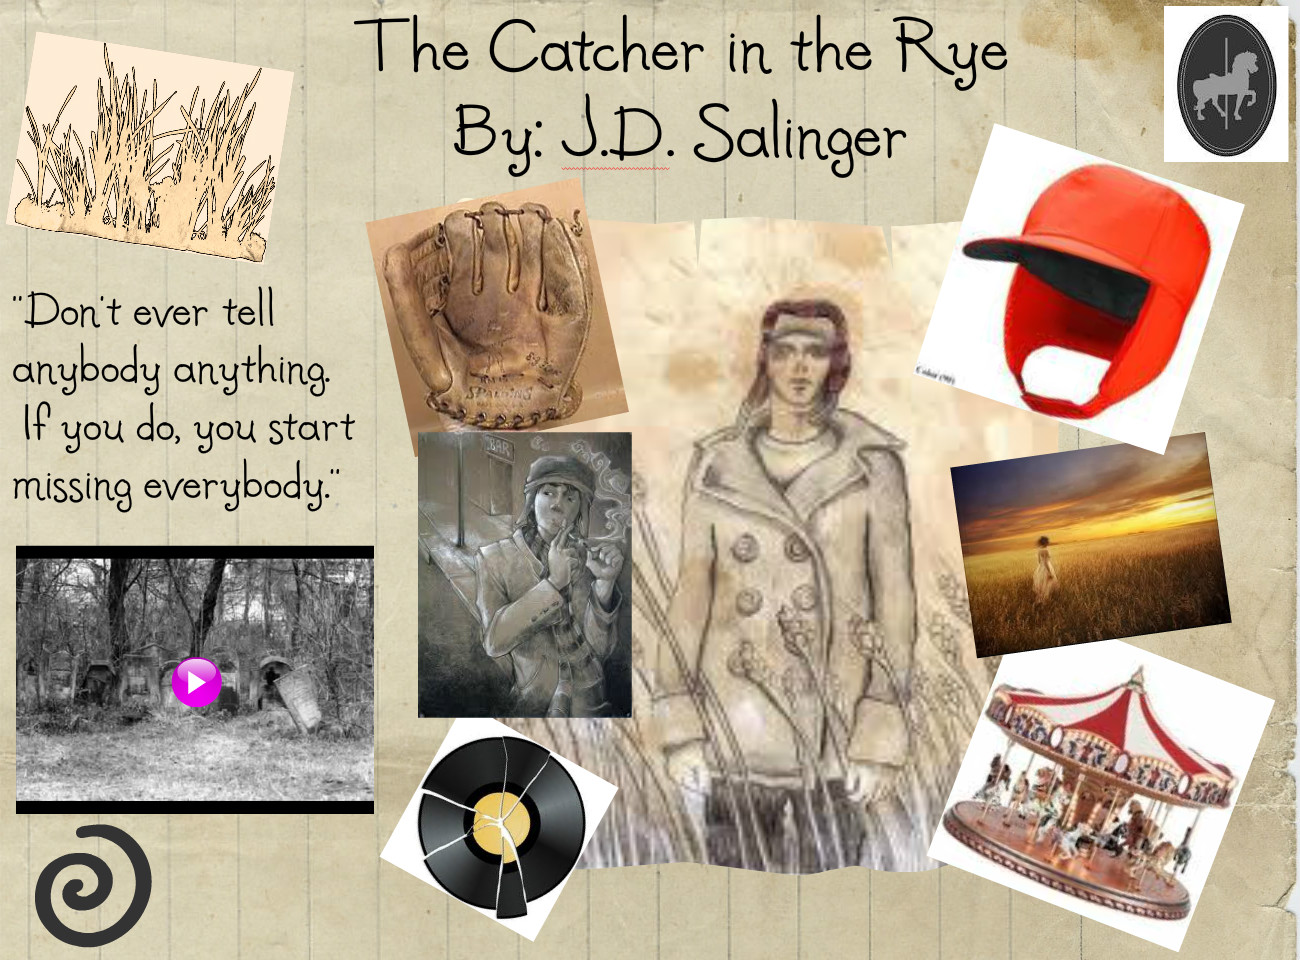 Catcher in the rye holden analysis essay